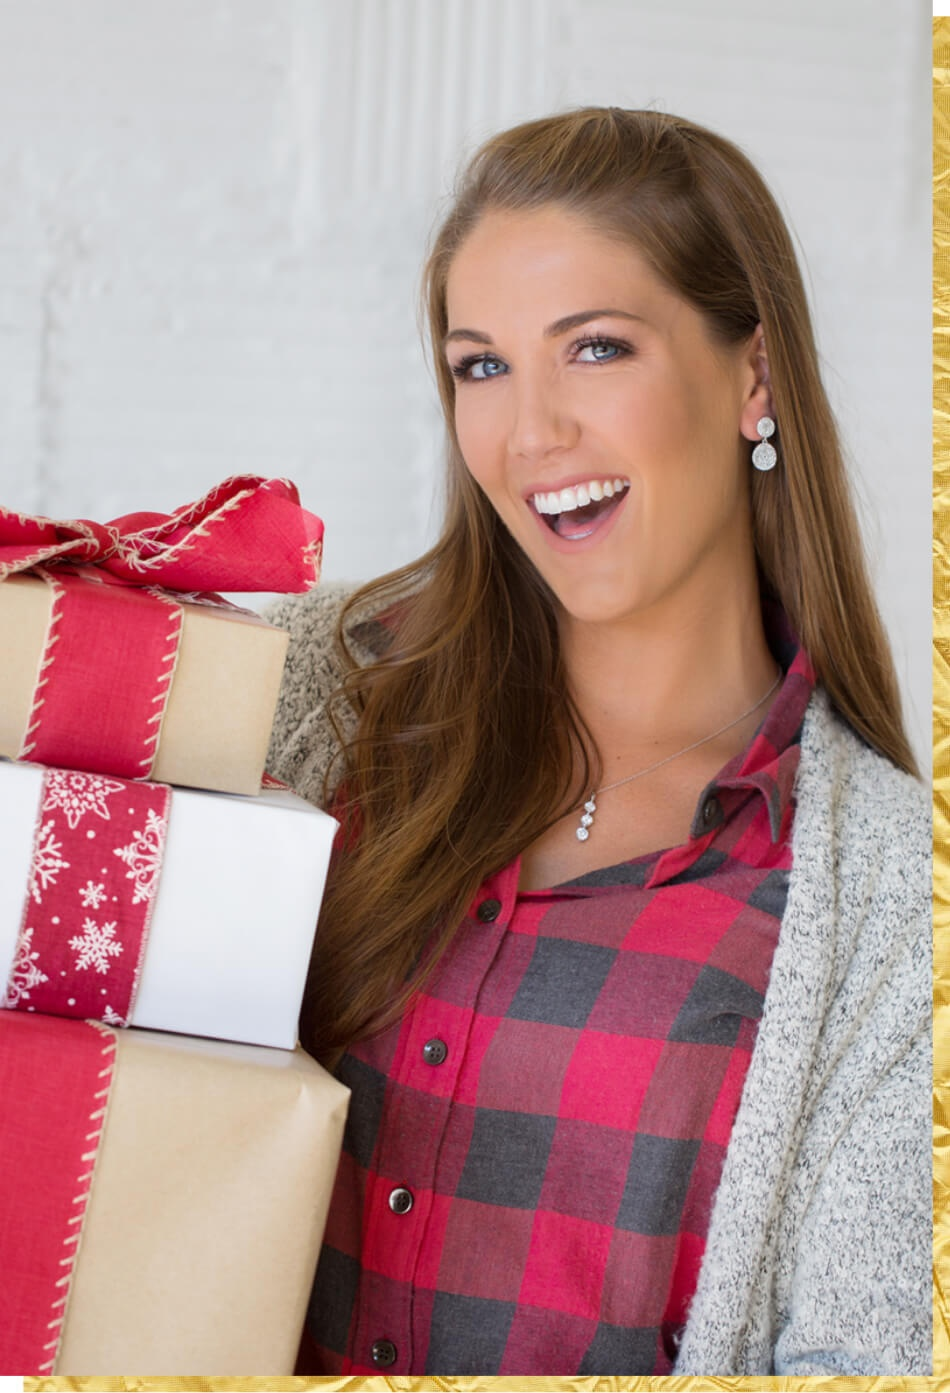 Woman wearing earrings and necklace holding holiday gifts